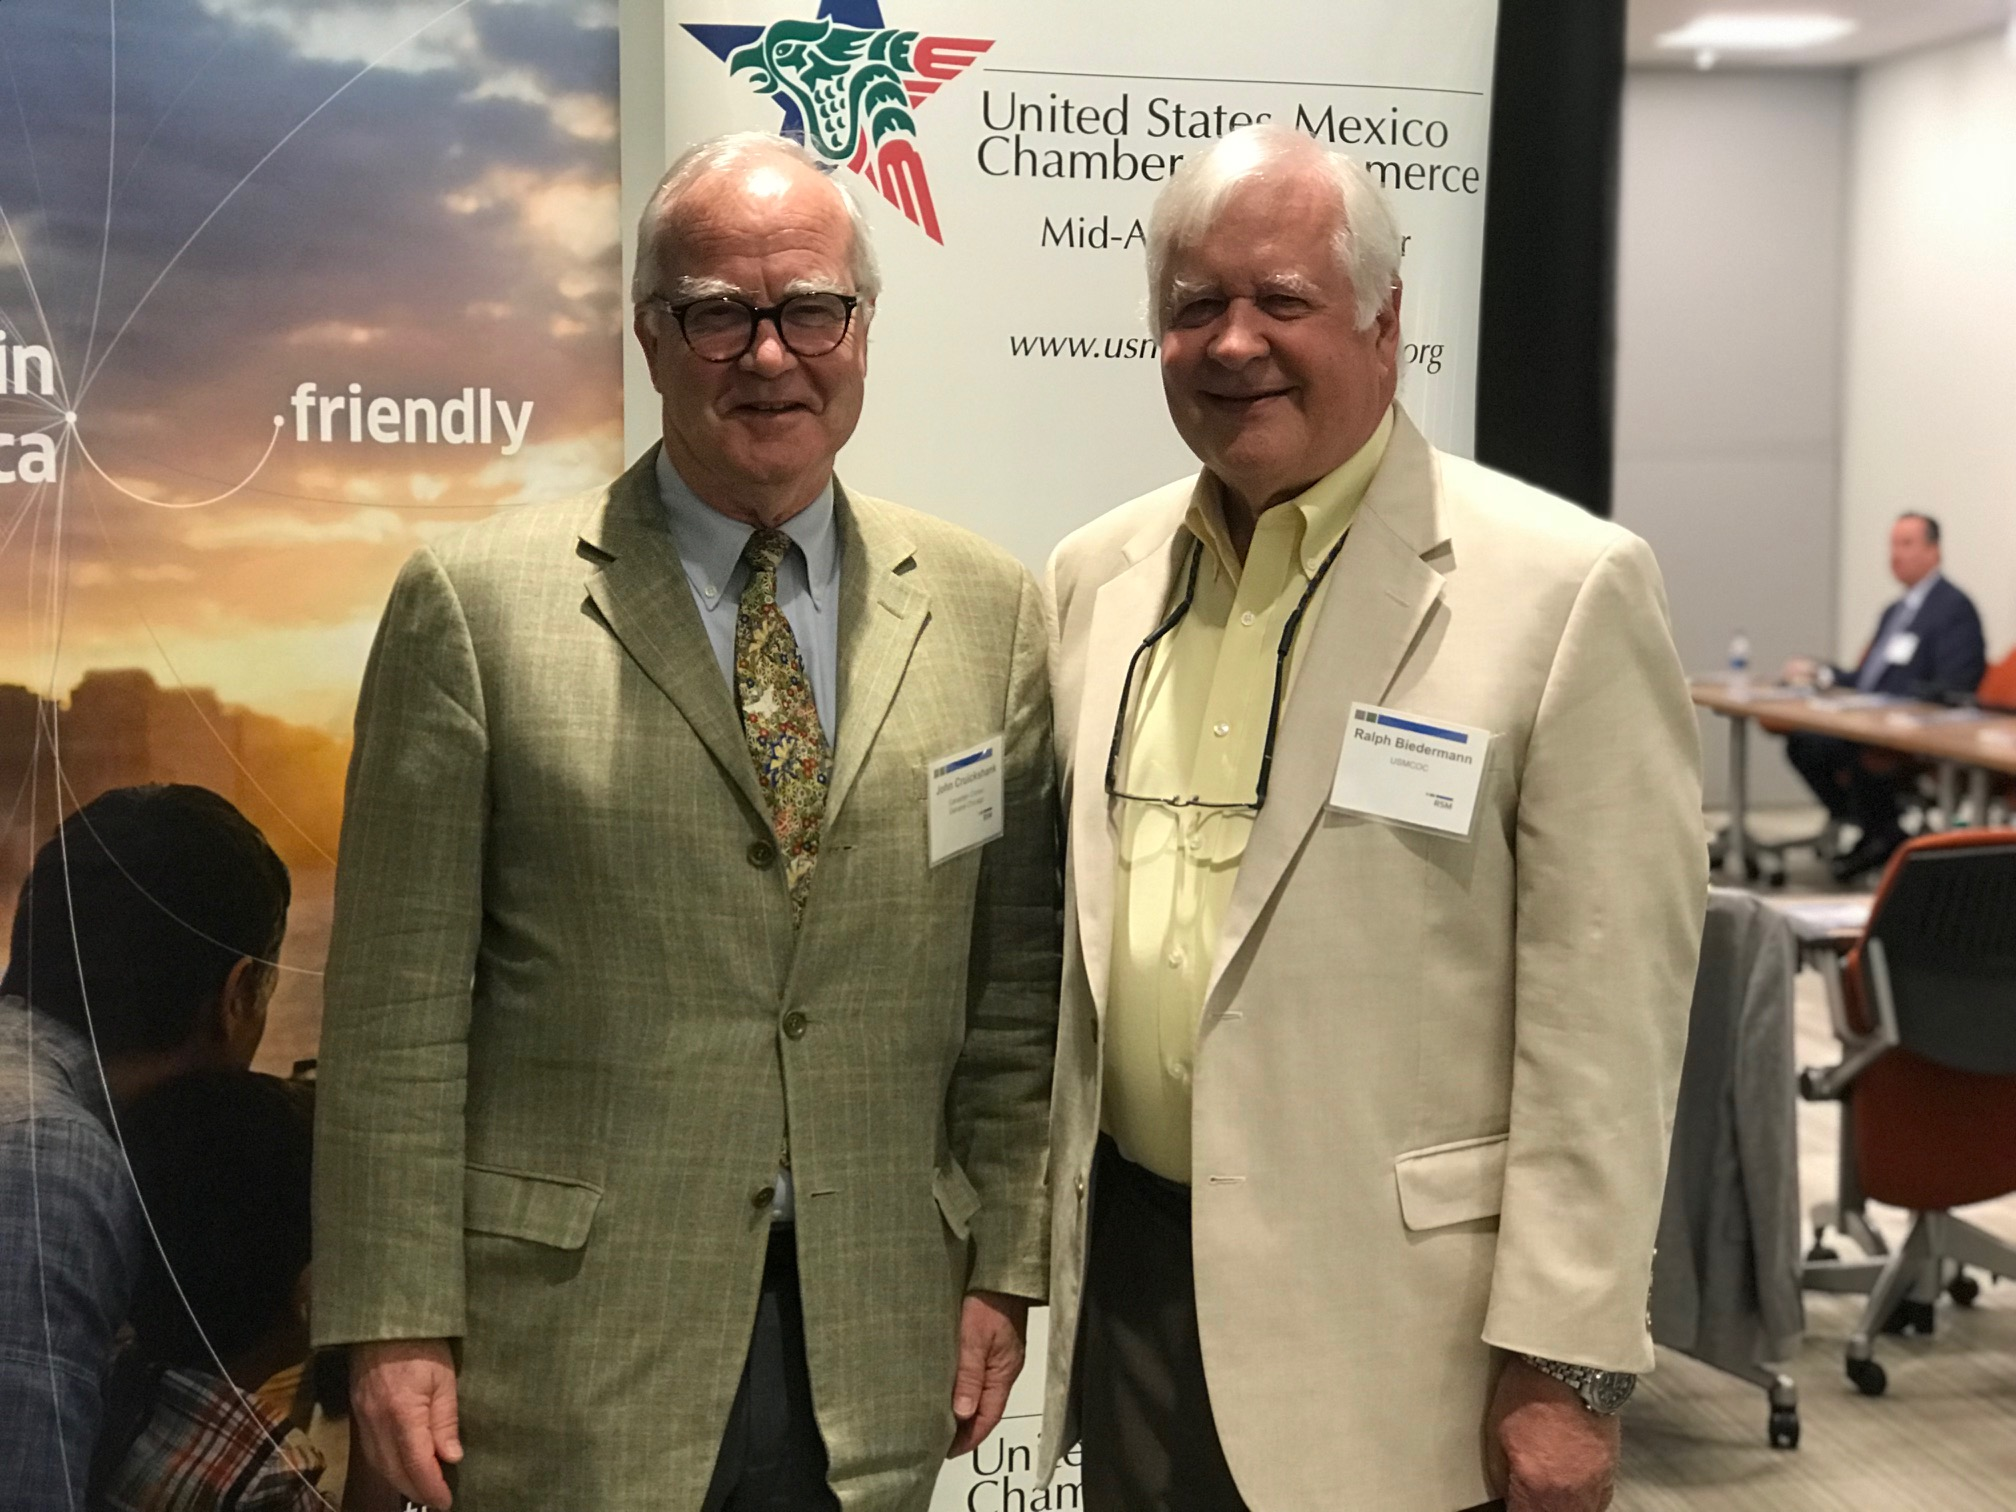 John Cruickshank, Consul General of Canada in Chicago, with Ralph Biedermann, Executive Director of USMCOCMA